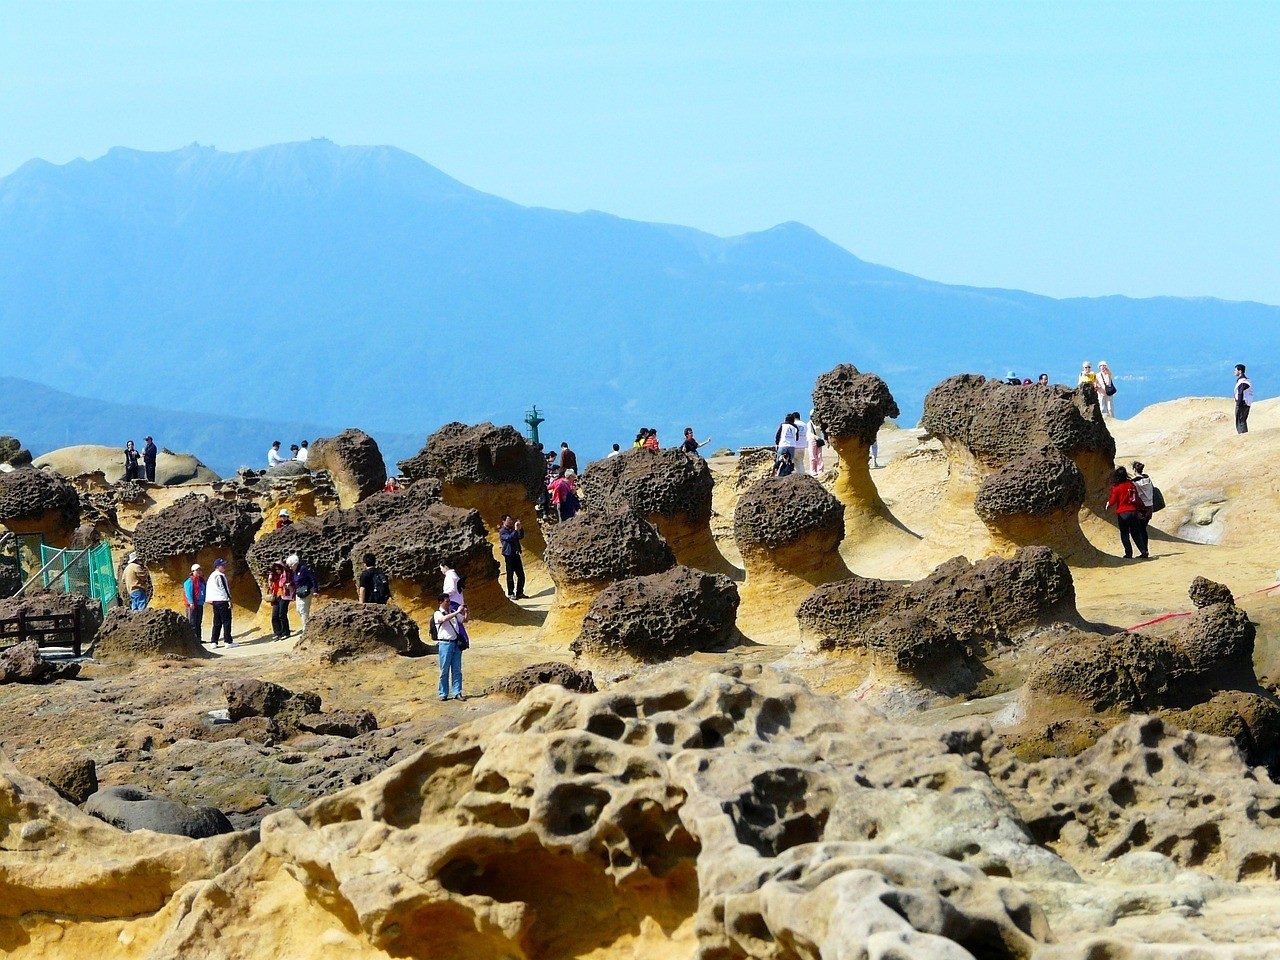 Yehliu Geopark - A beautiful outdoor place to visit in Taipei